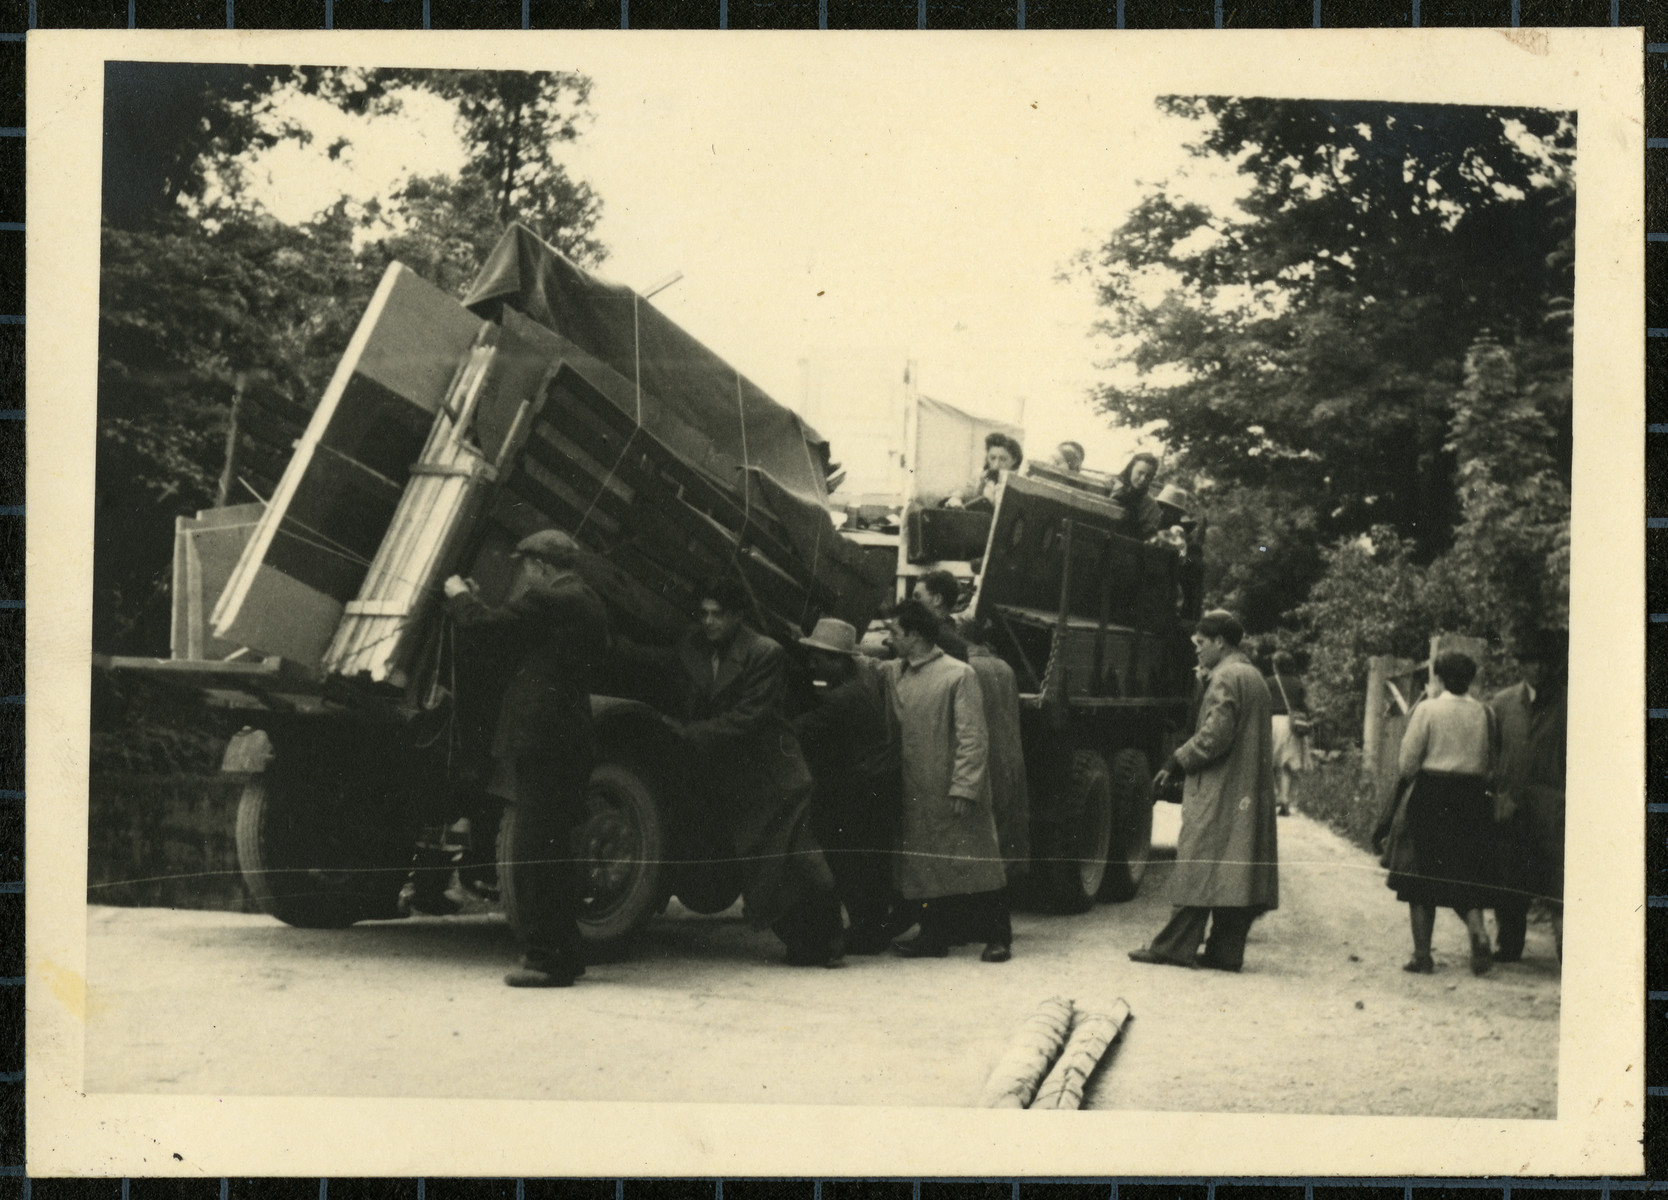 Members of the Bamberg Yiddish Theater group load a truck with props as they prepare to perform a play in a neighboring displaced persons camp.